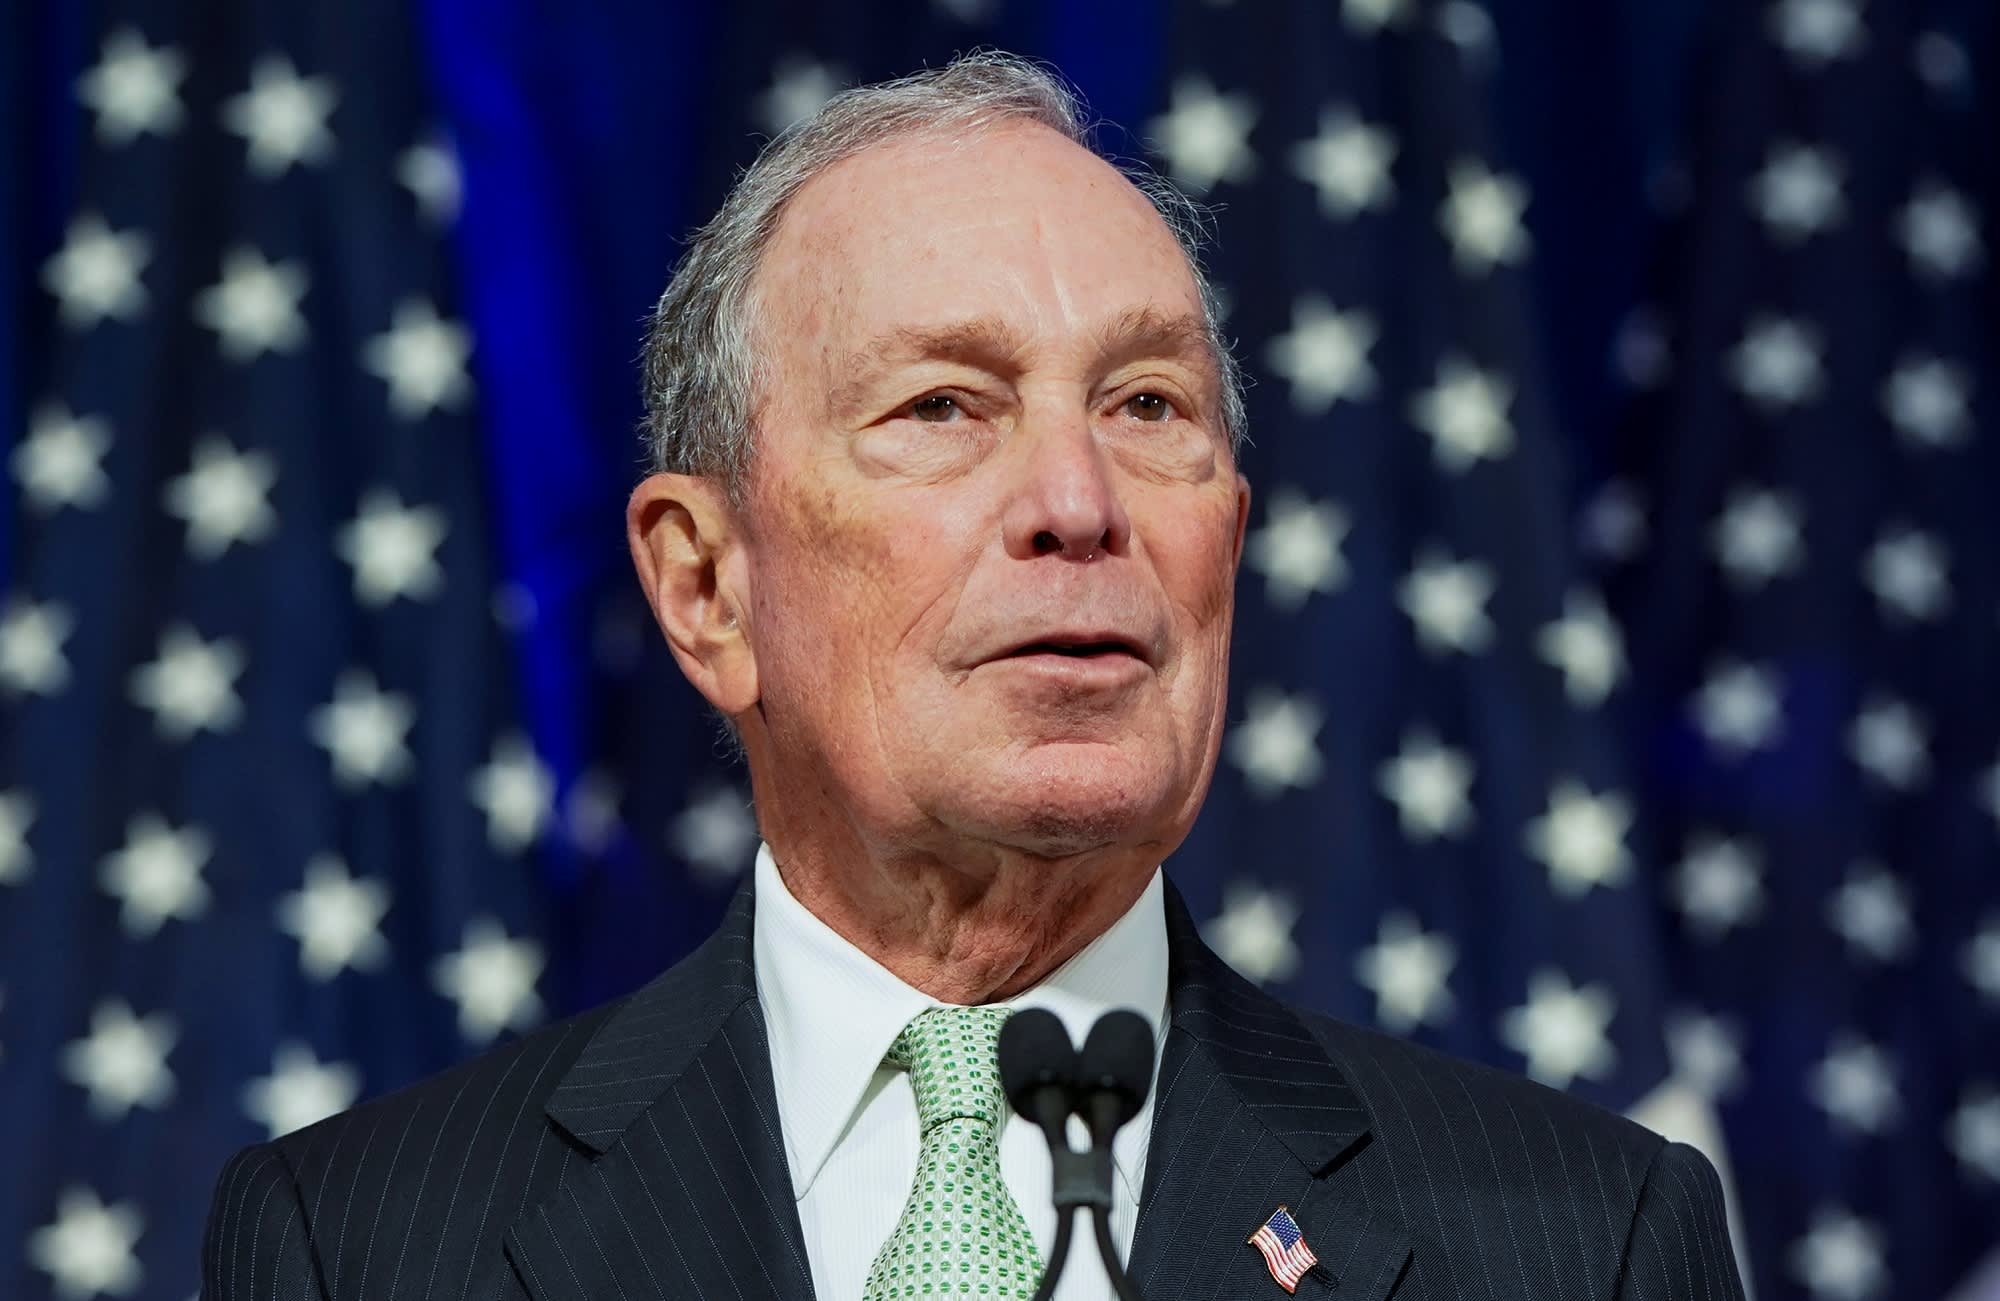 Bloomberg offers to release women from 3 non-disclosure agreements after Warren roasts him